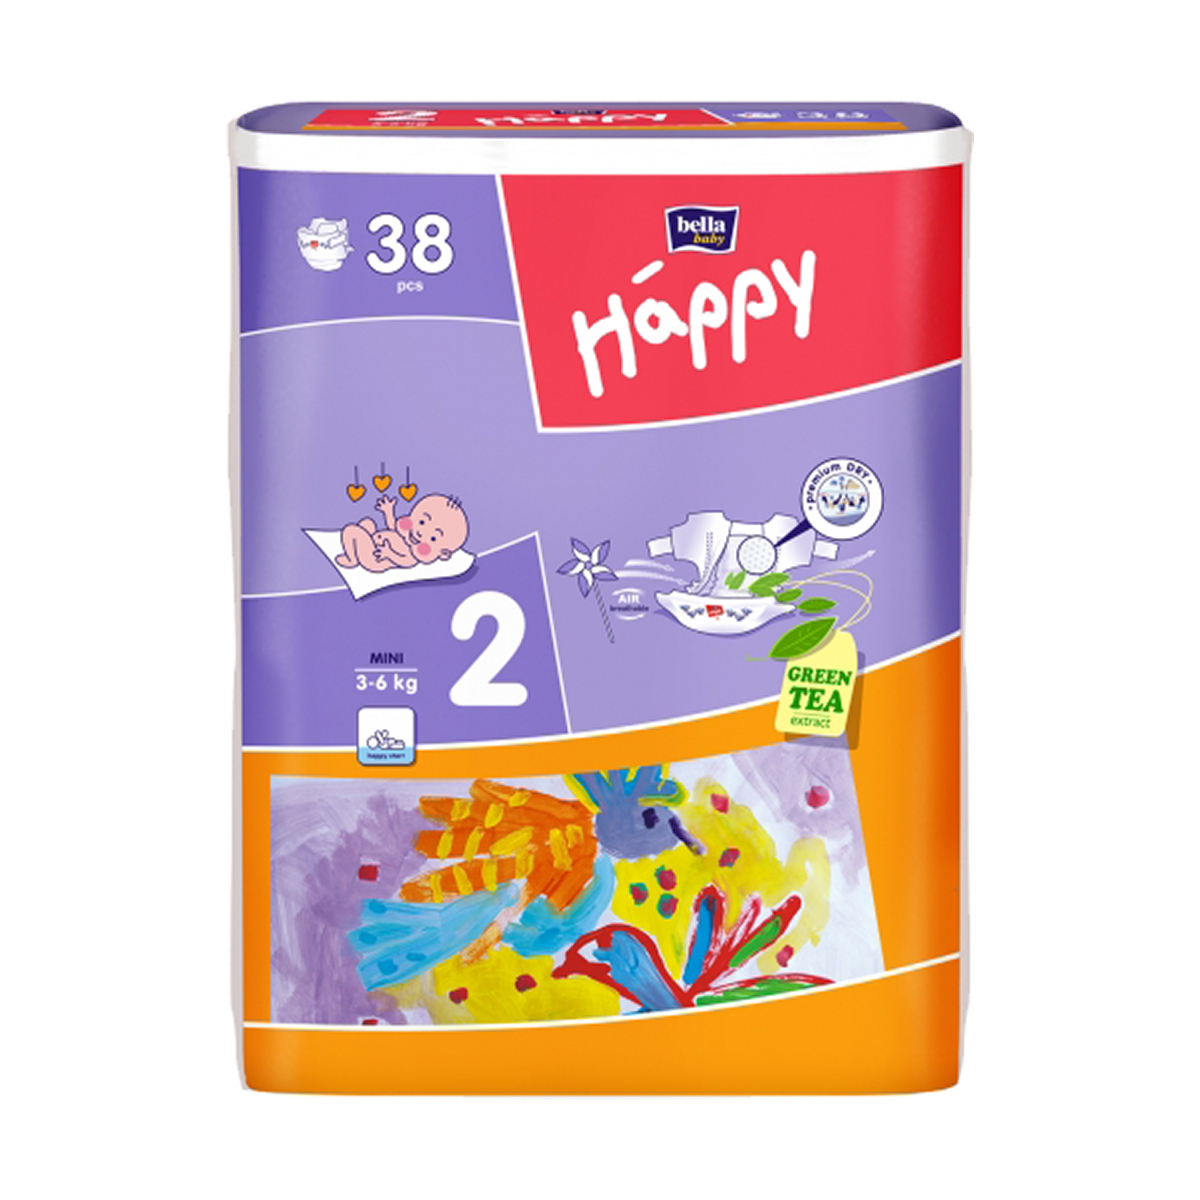 scutece happy mini 2, 38 buc, 3 - 6 kg